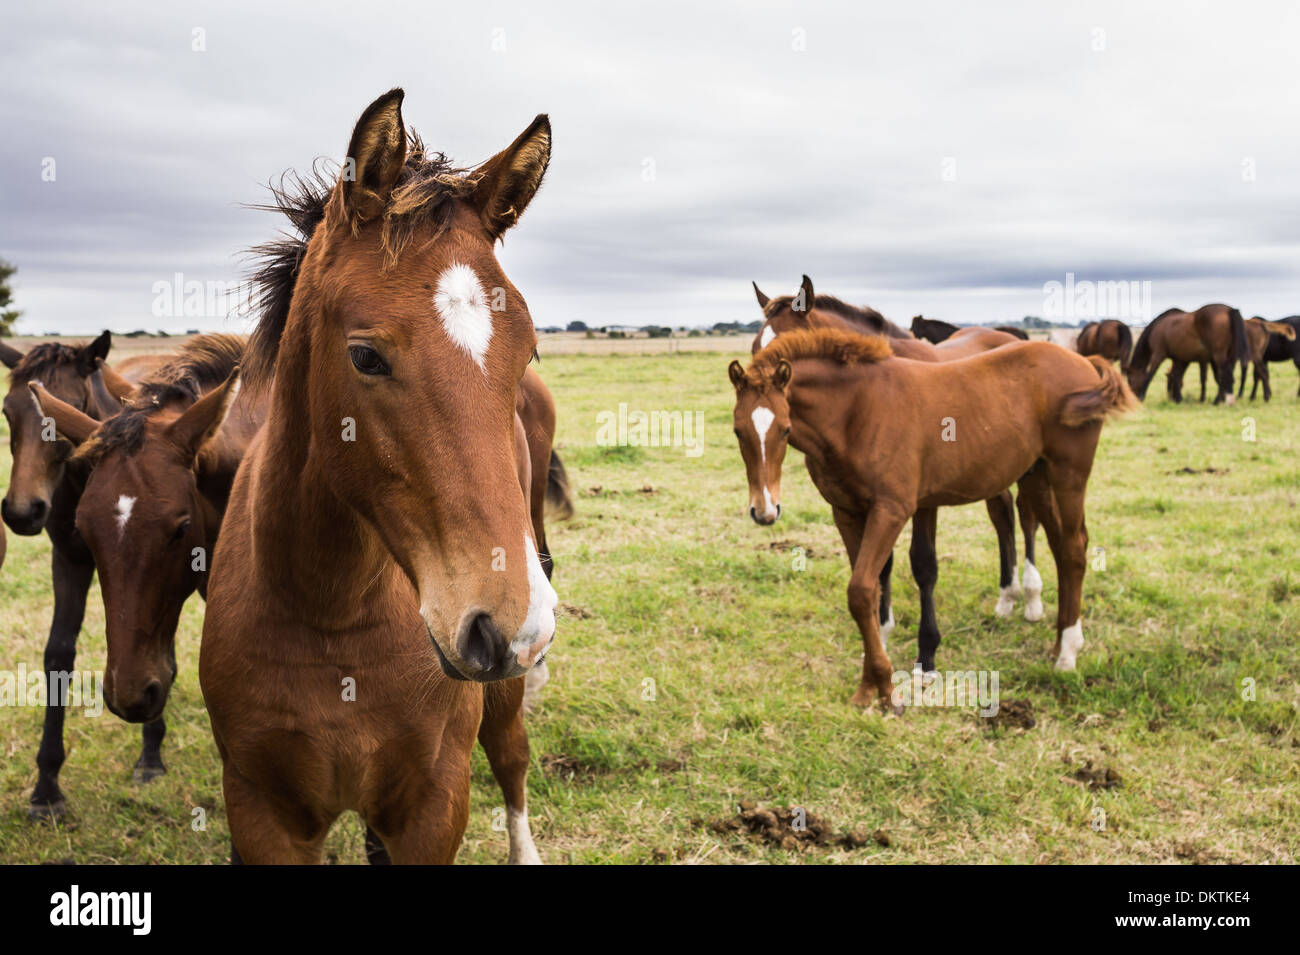 Raising horses for show jumping in the Pampa region of Argentina. - Stock Image